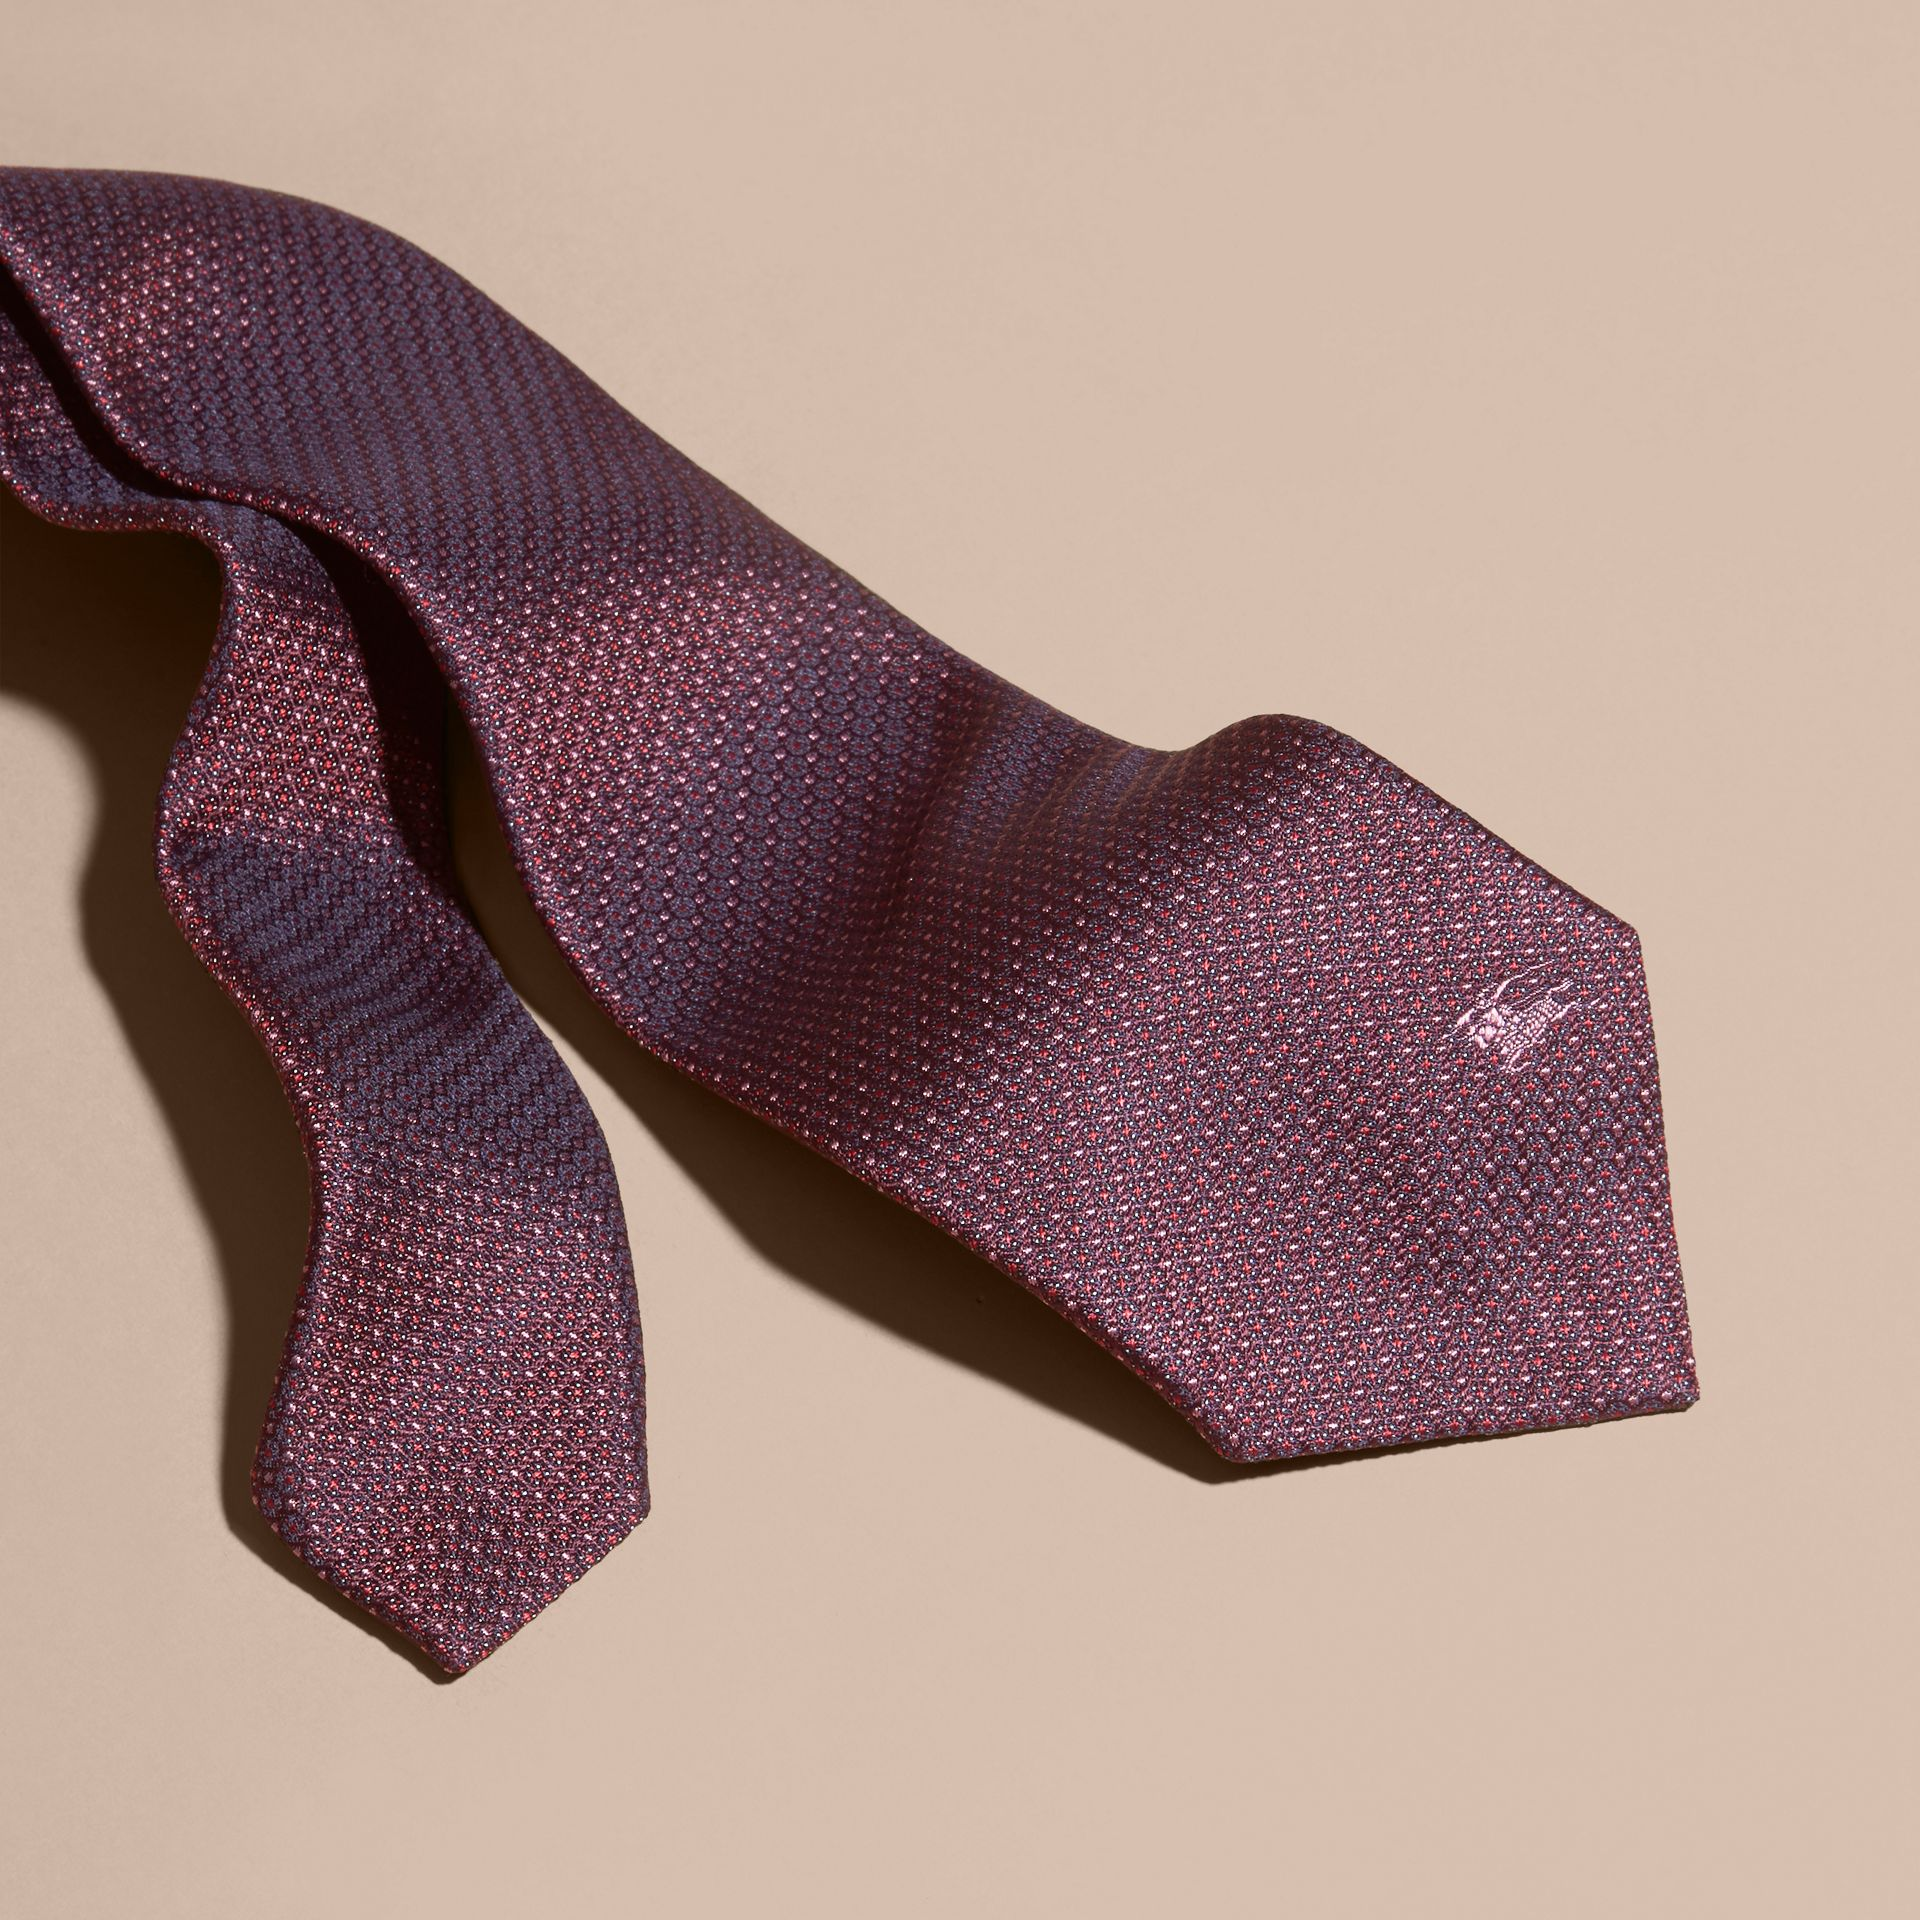 Modern Cut Patterned Silk Tie in Deep Claret - Men | Burberry - gallery image 2